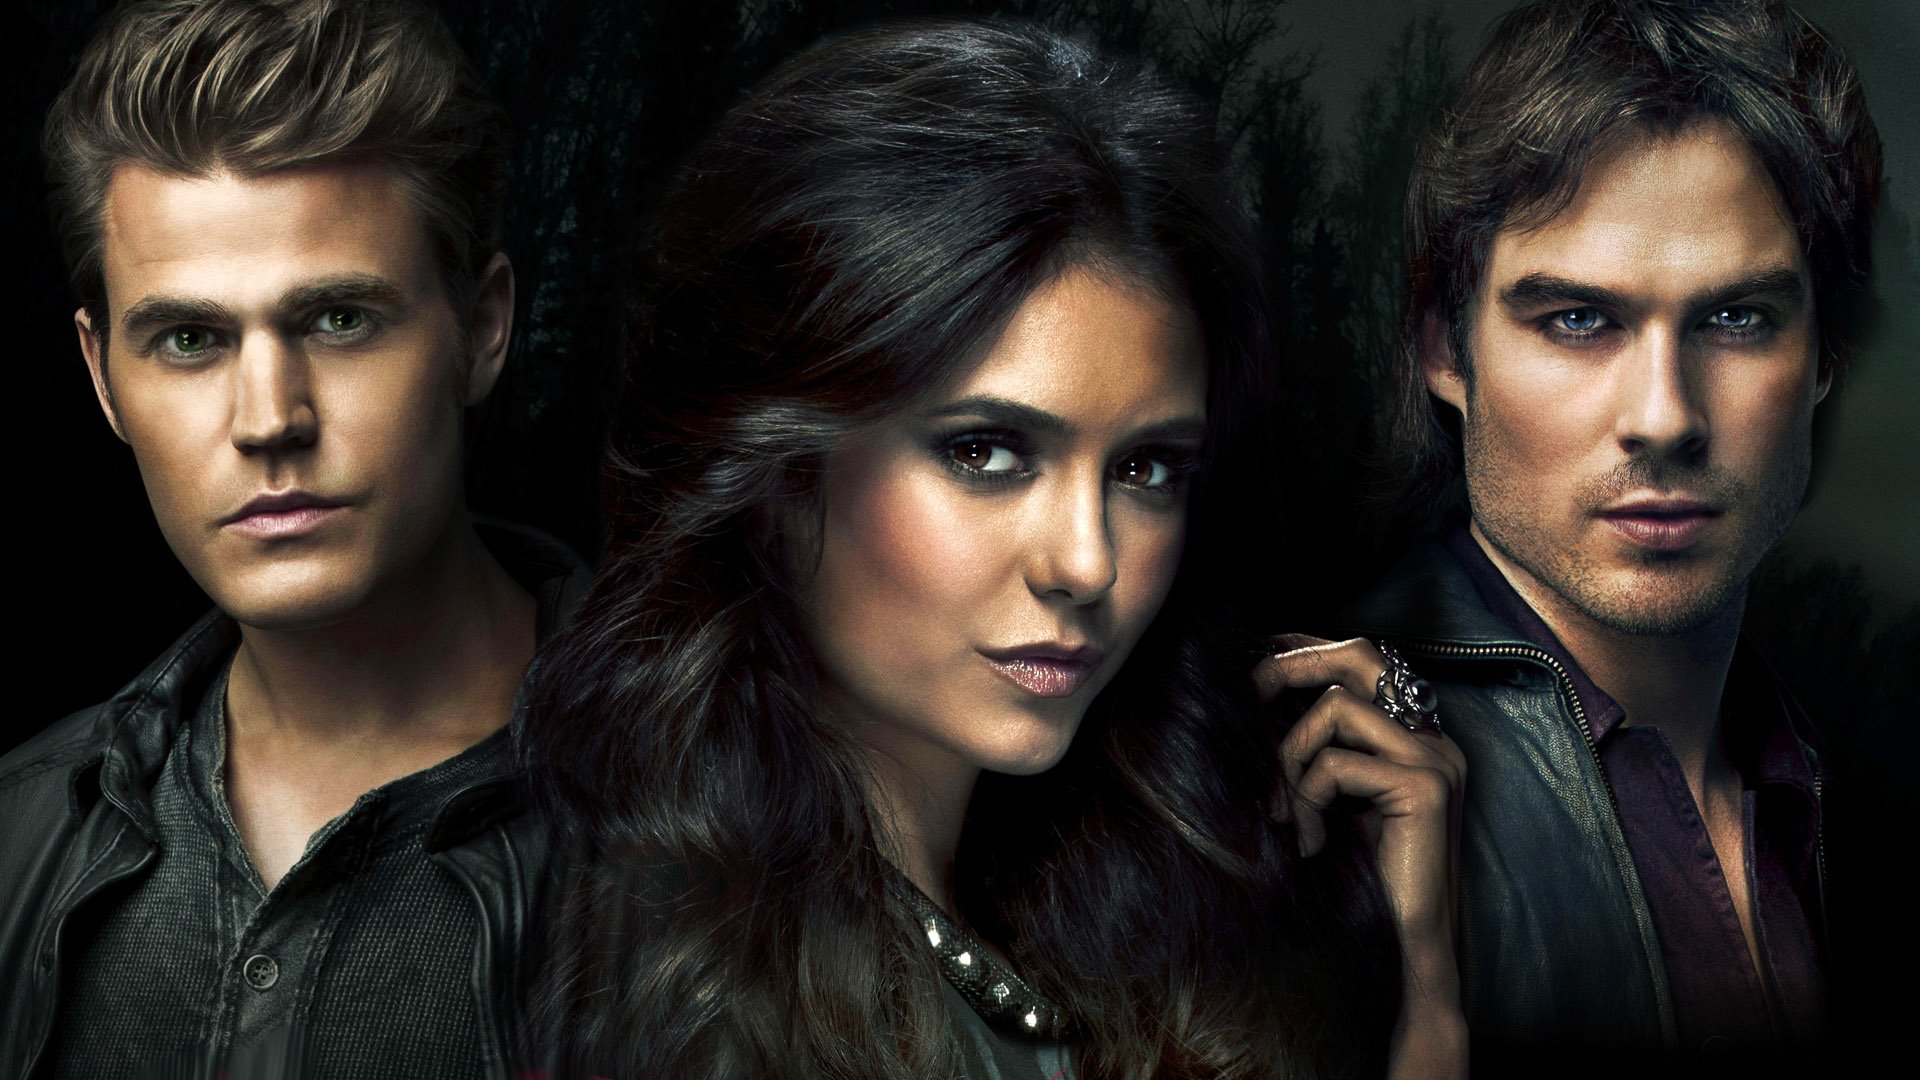 Download 1920x1080 The Vampire Diaries 3 Wallpaper